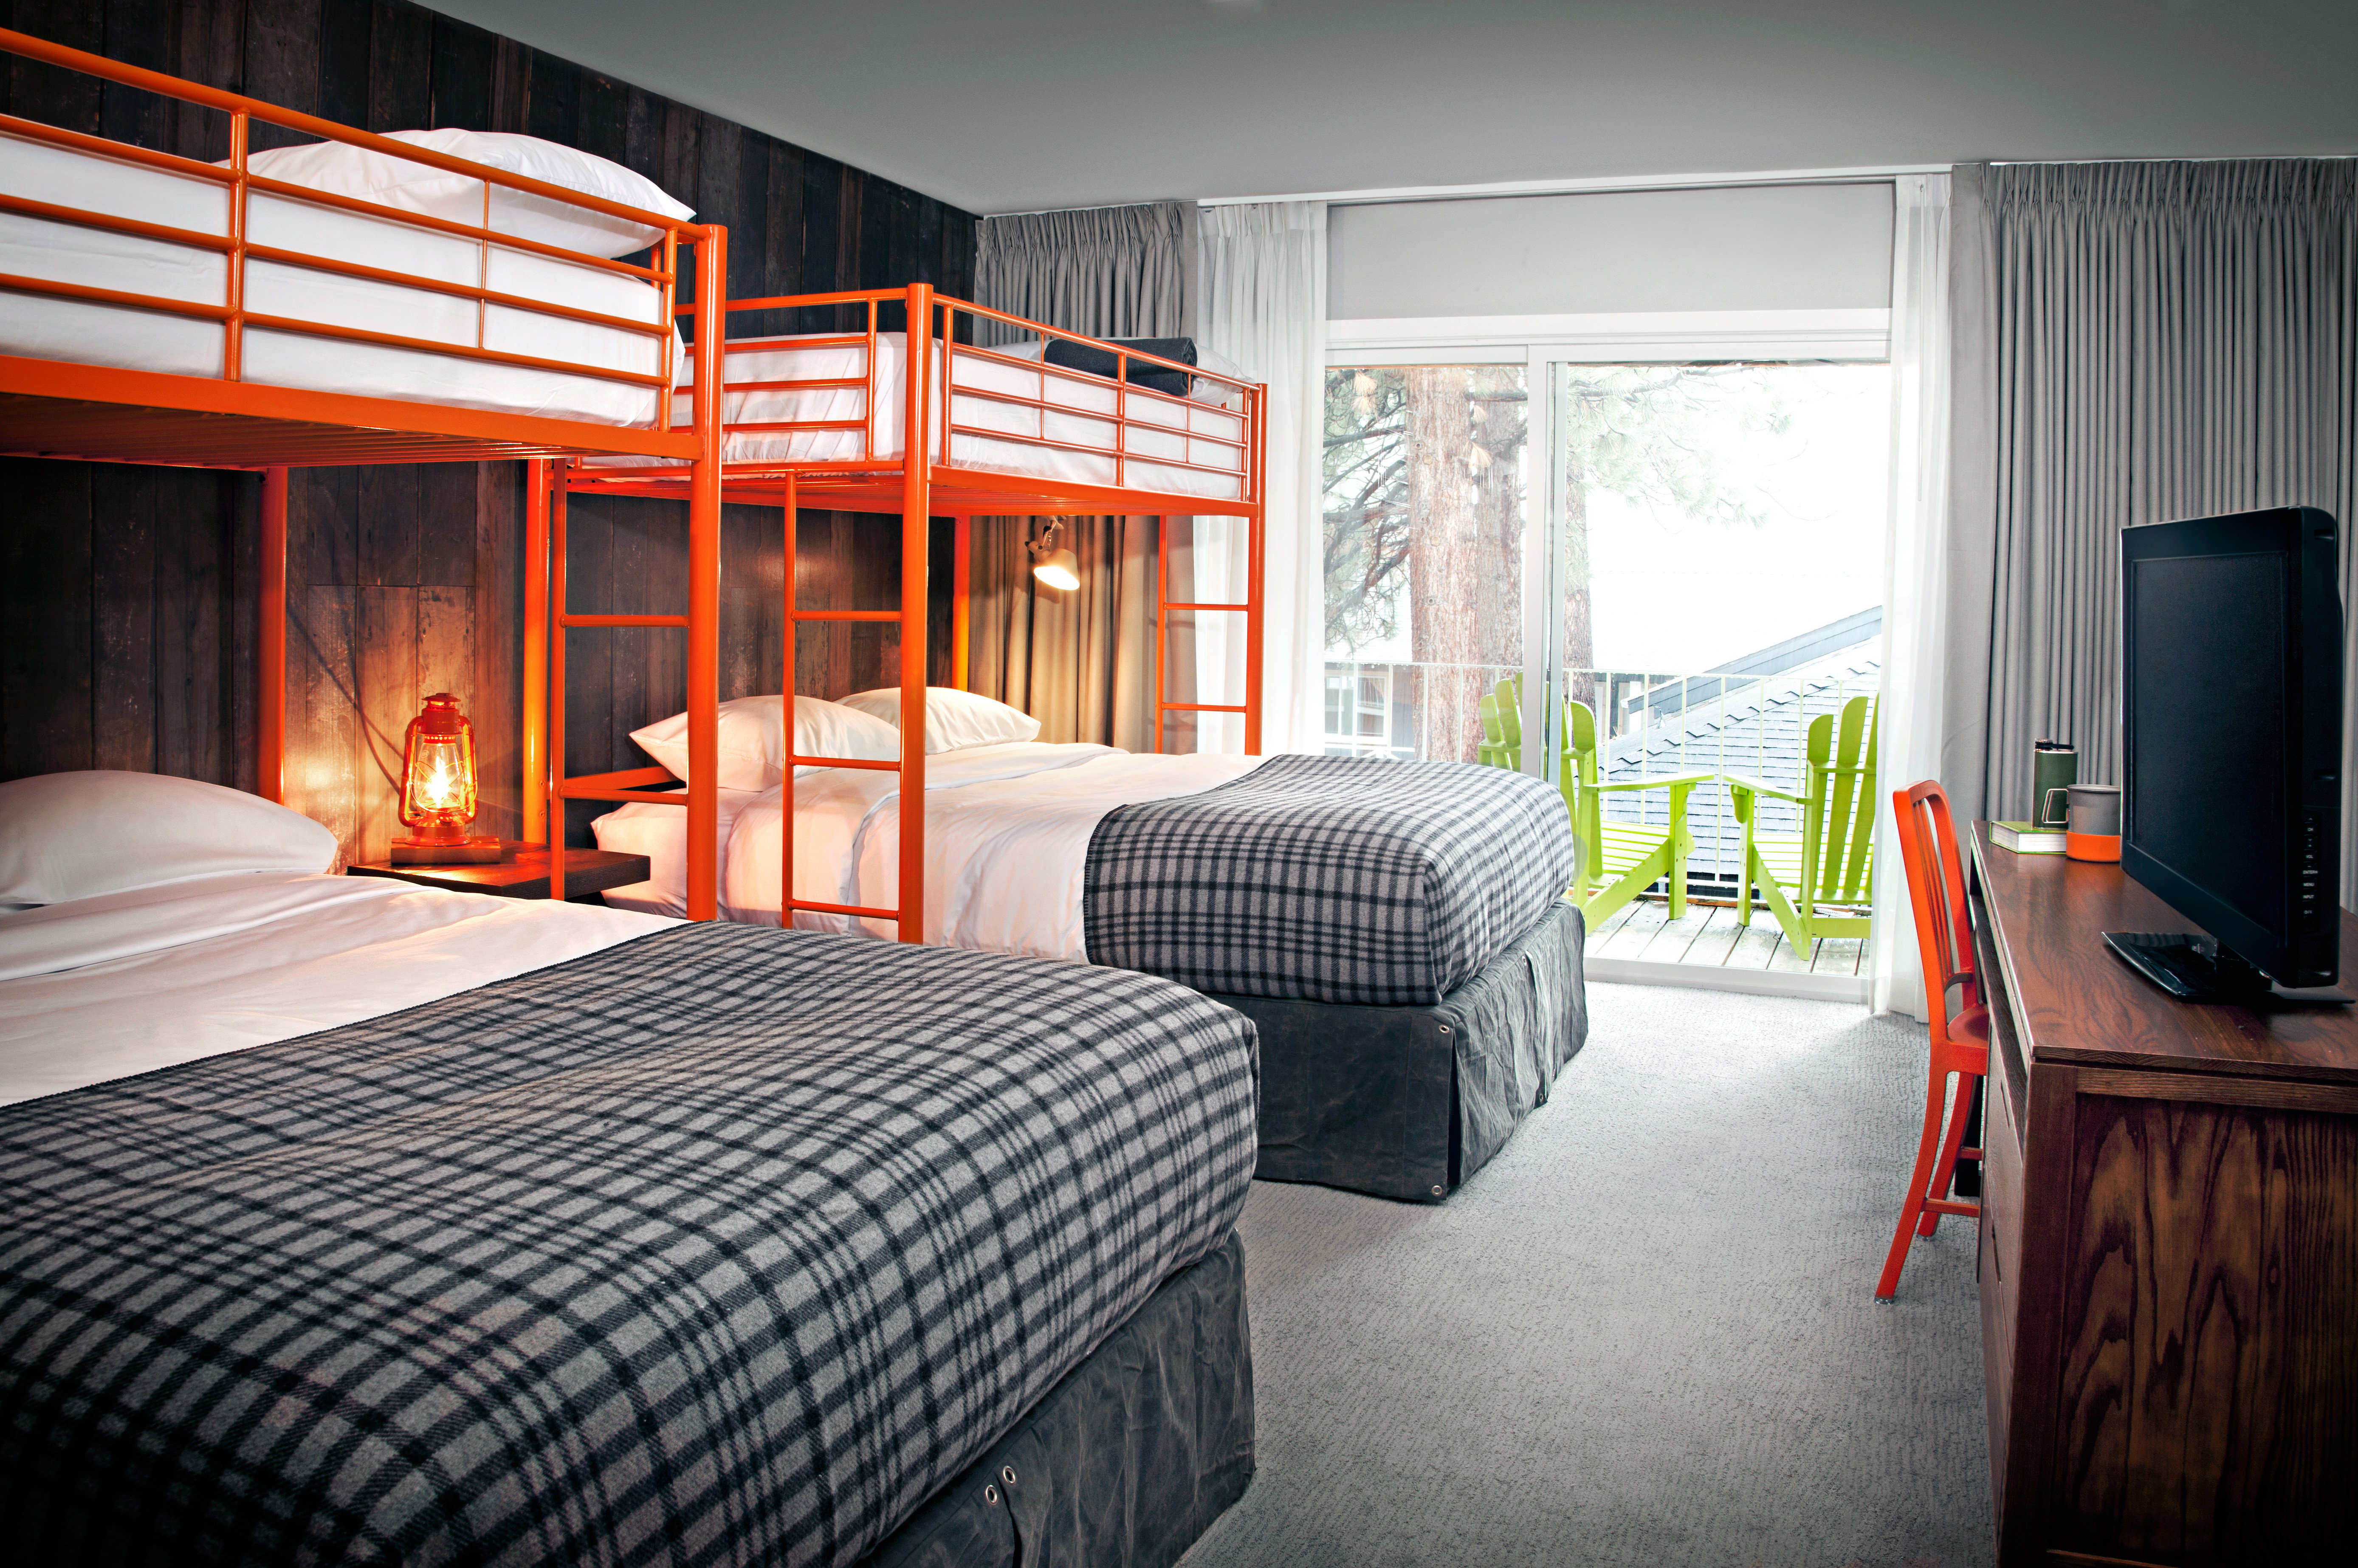 Balcony Bedroom Eco Glamping Modern Rustic property house home cottage Suite